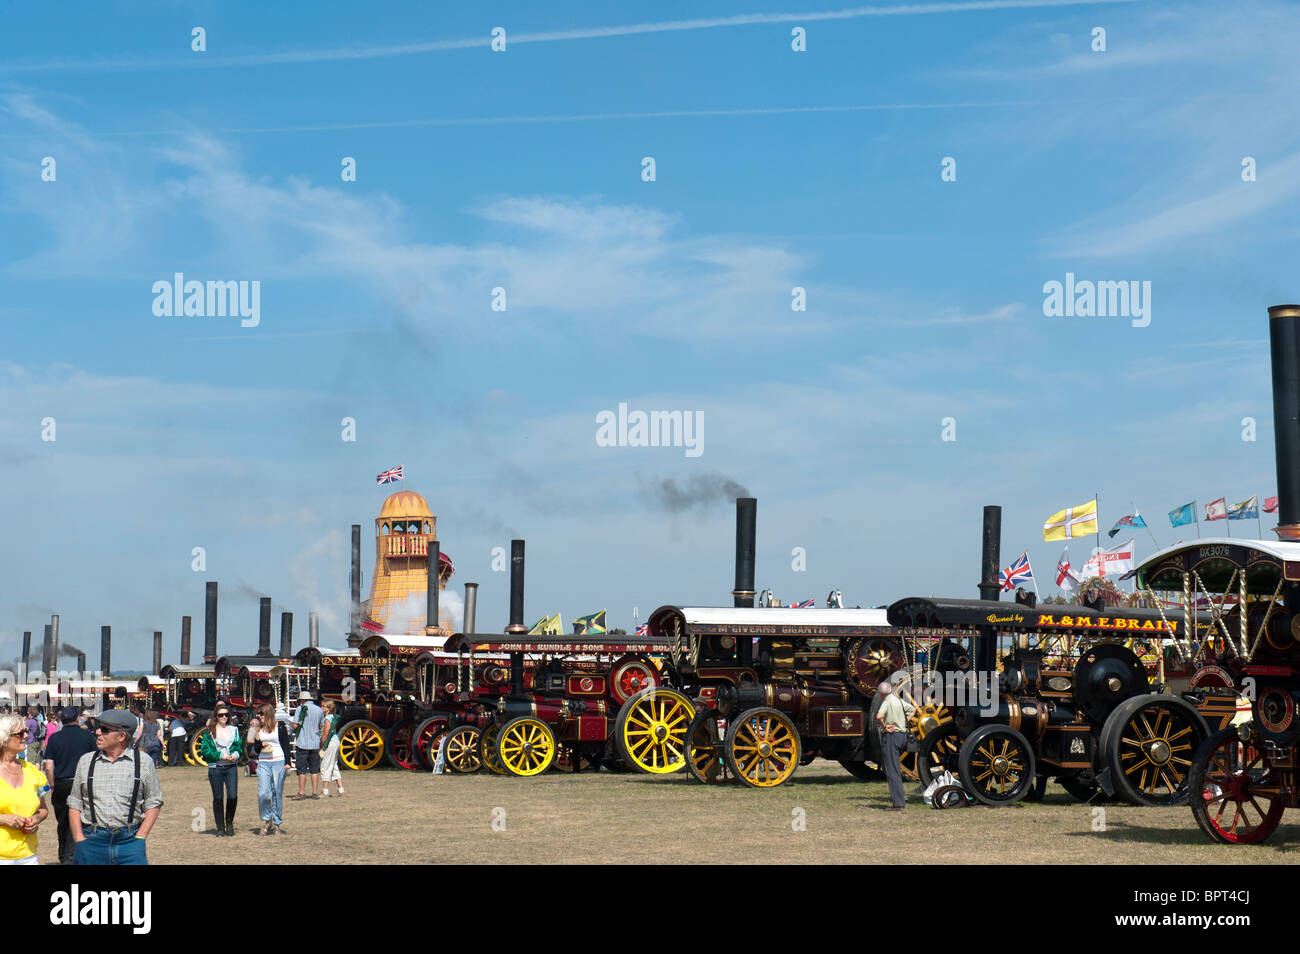 Showmans Traction Engines at Great Dorset steam fair 2010, England - Stock Image